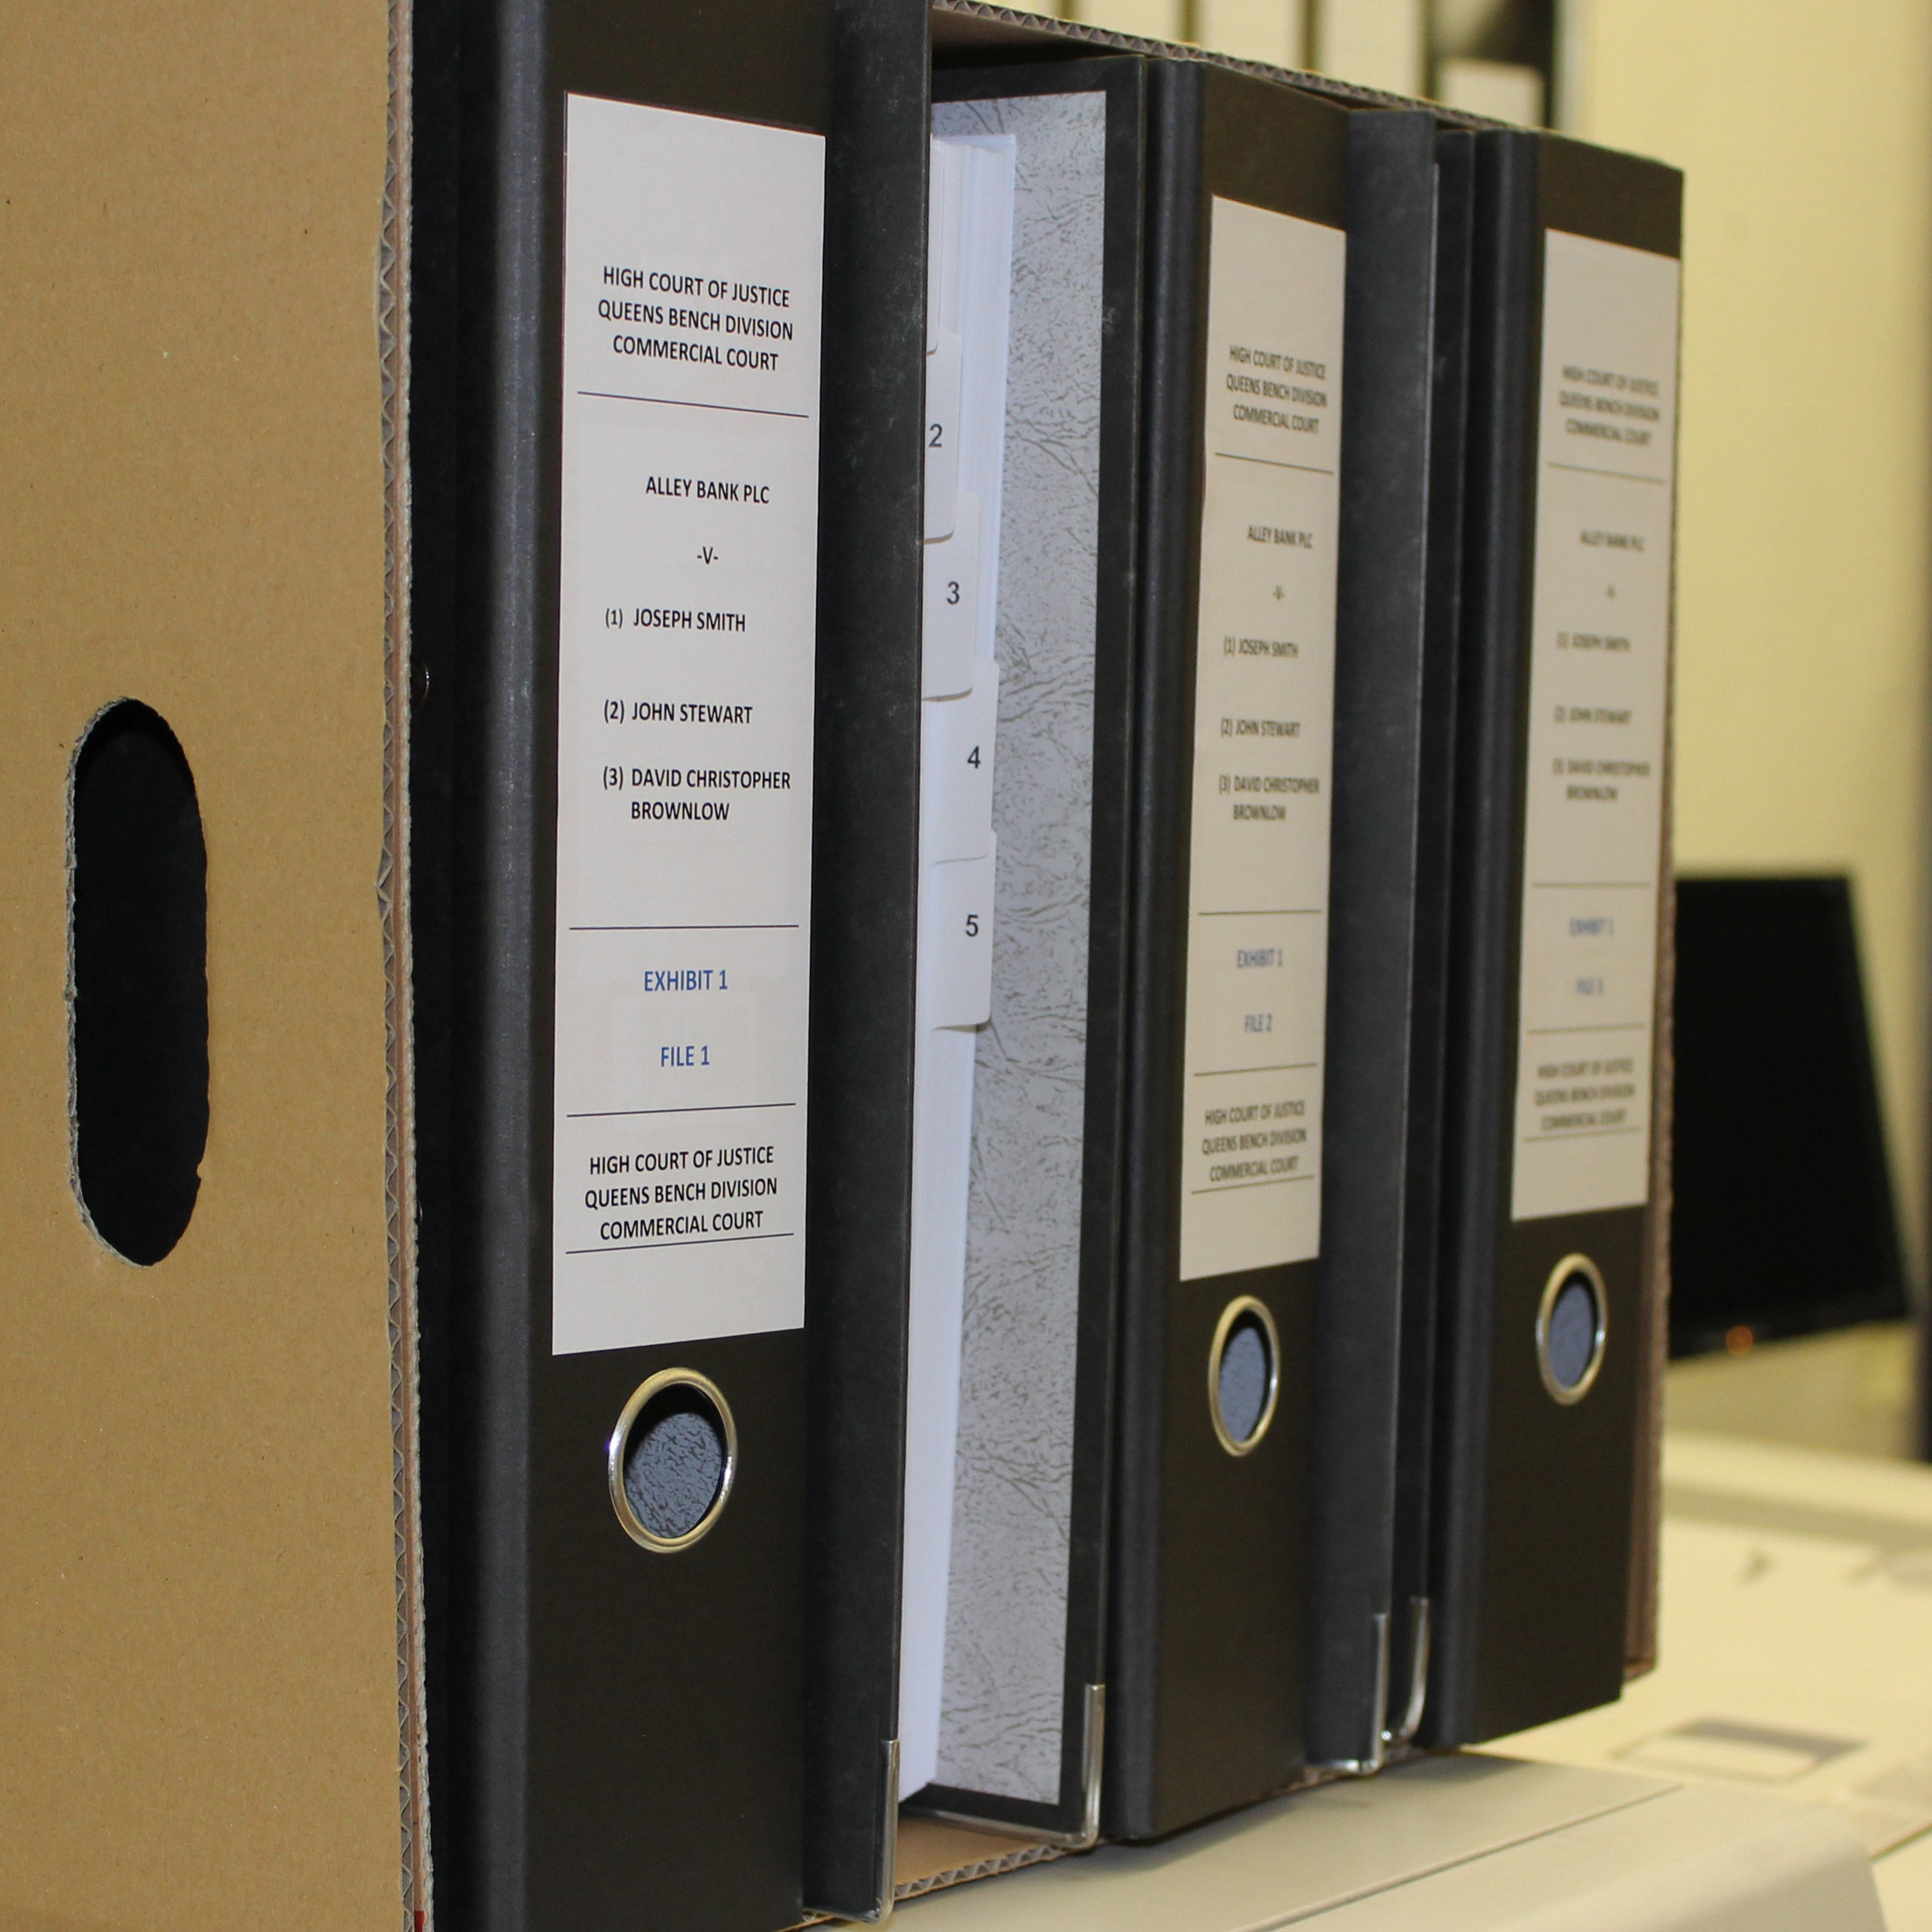 Box of lever arch files for legal clients